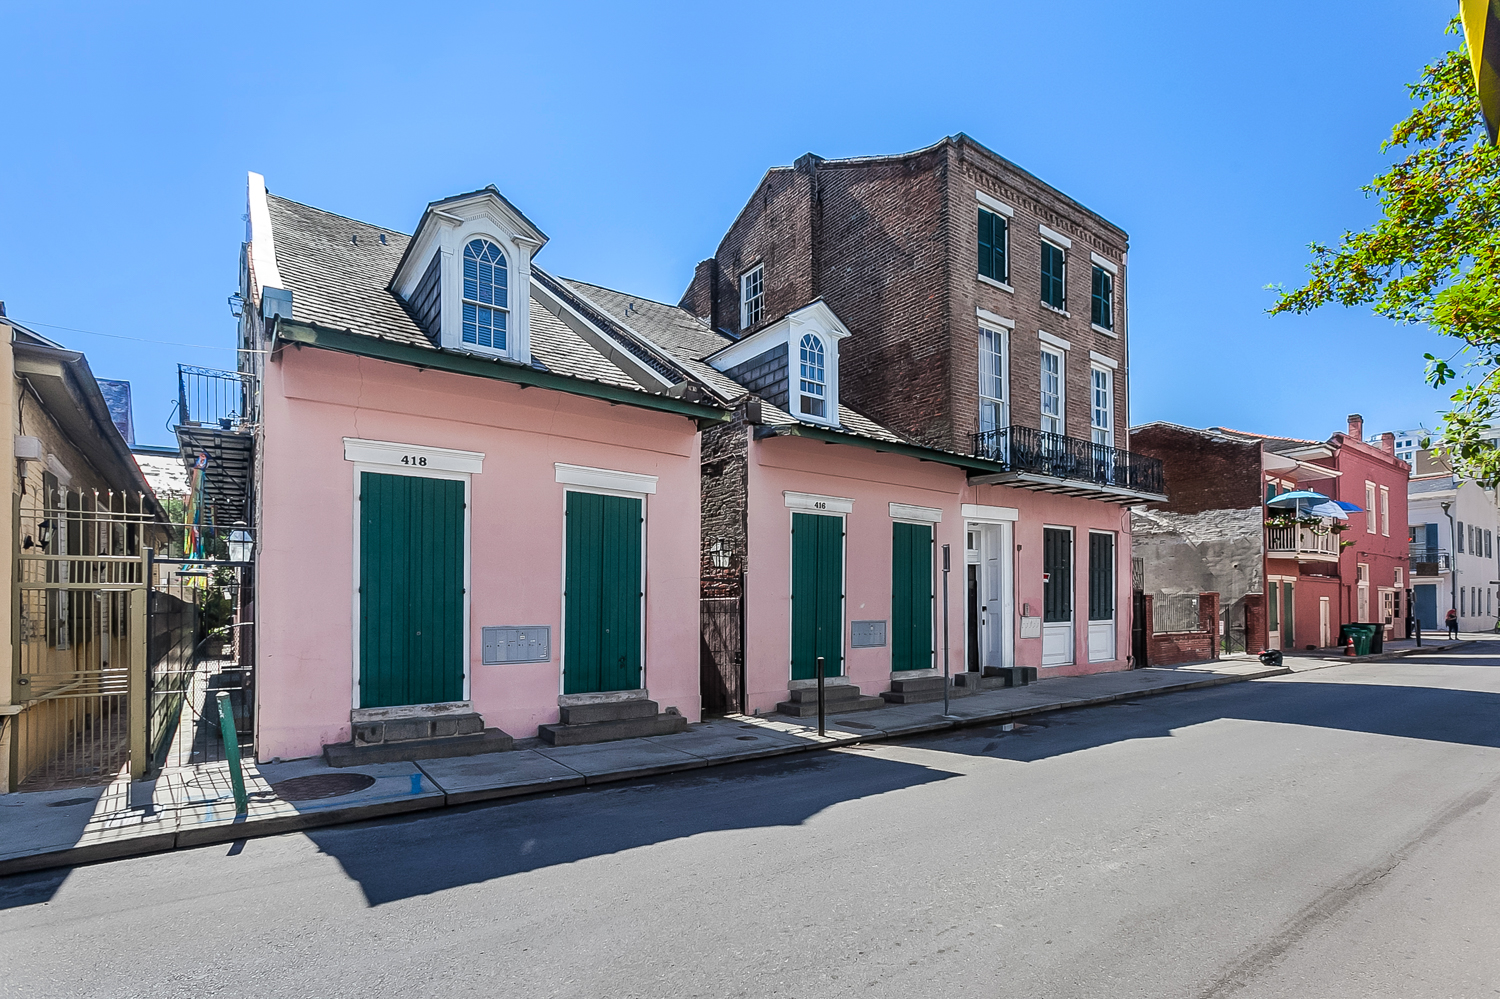 For sale in new orleans curbed new orleans sizable condo on burgundy street asks just under 400k sciox Image collections